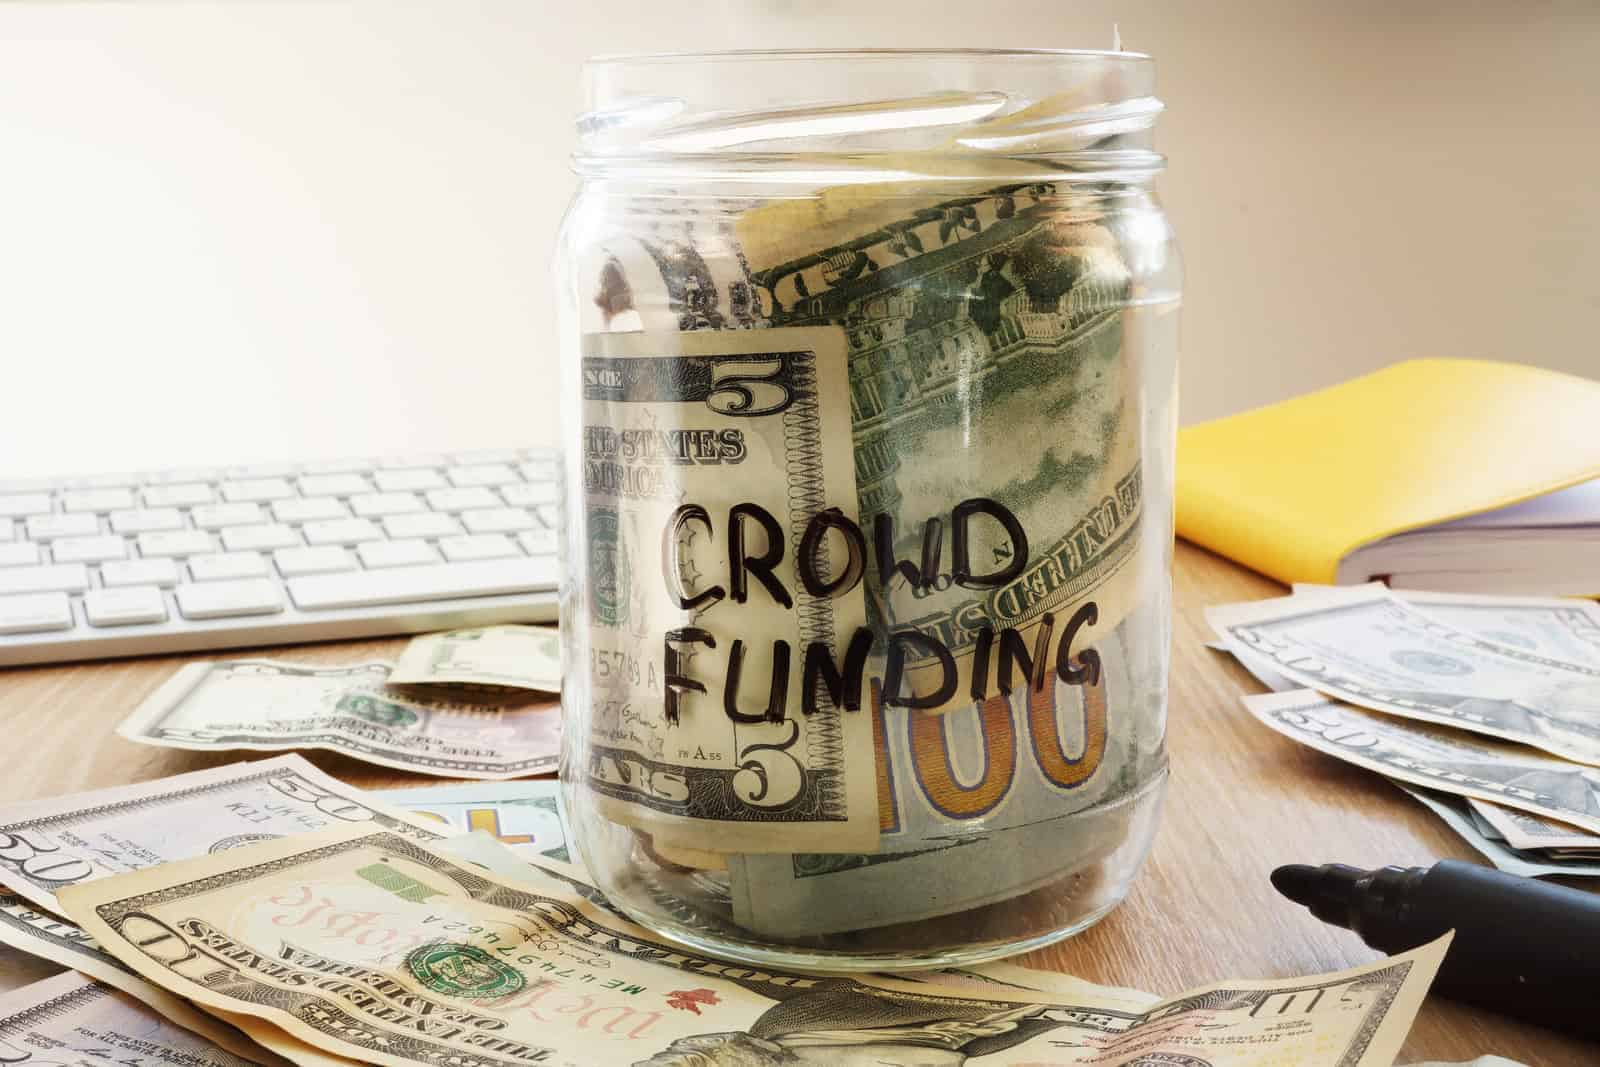 Campaign-driven Crowdfunding – Why It's Effective